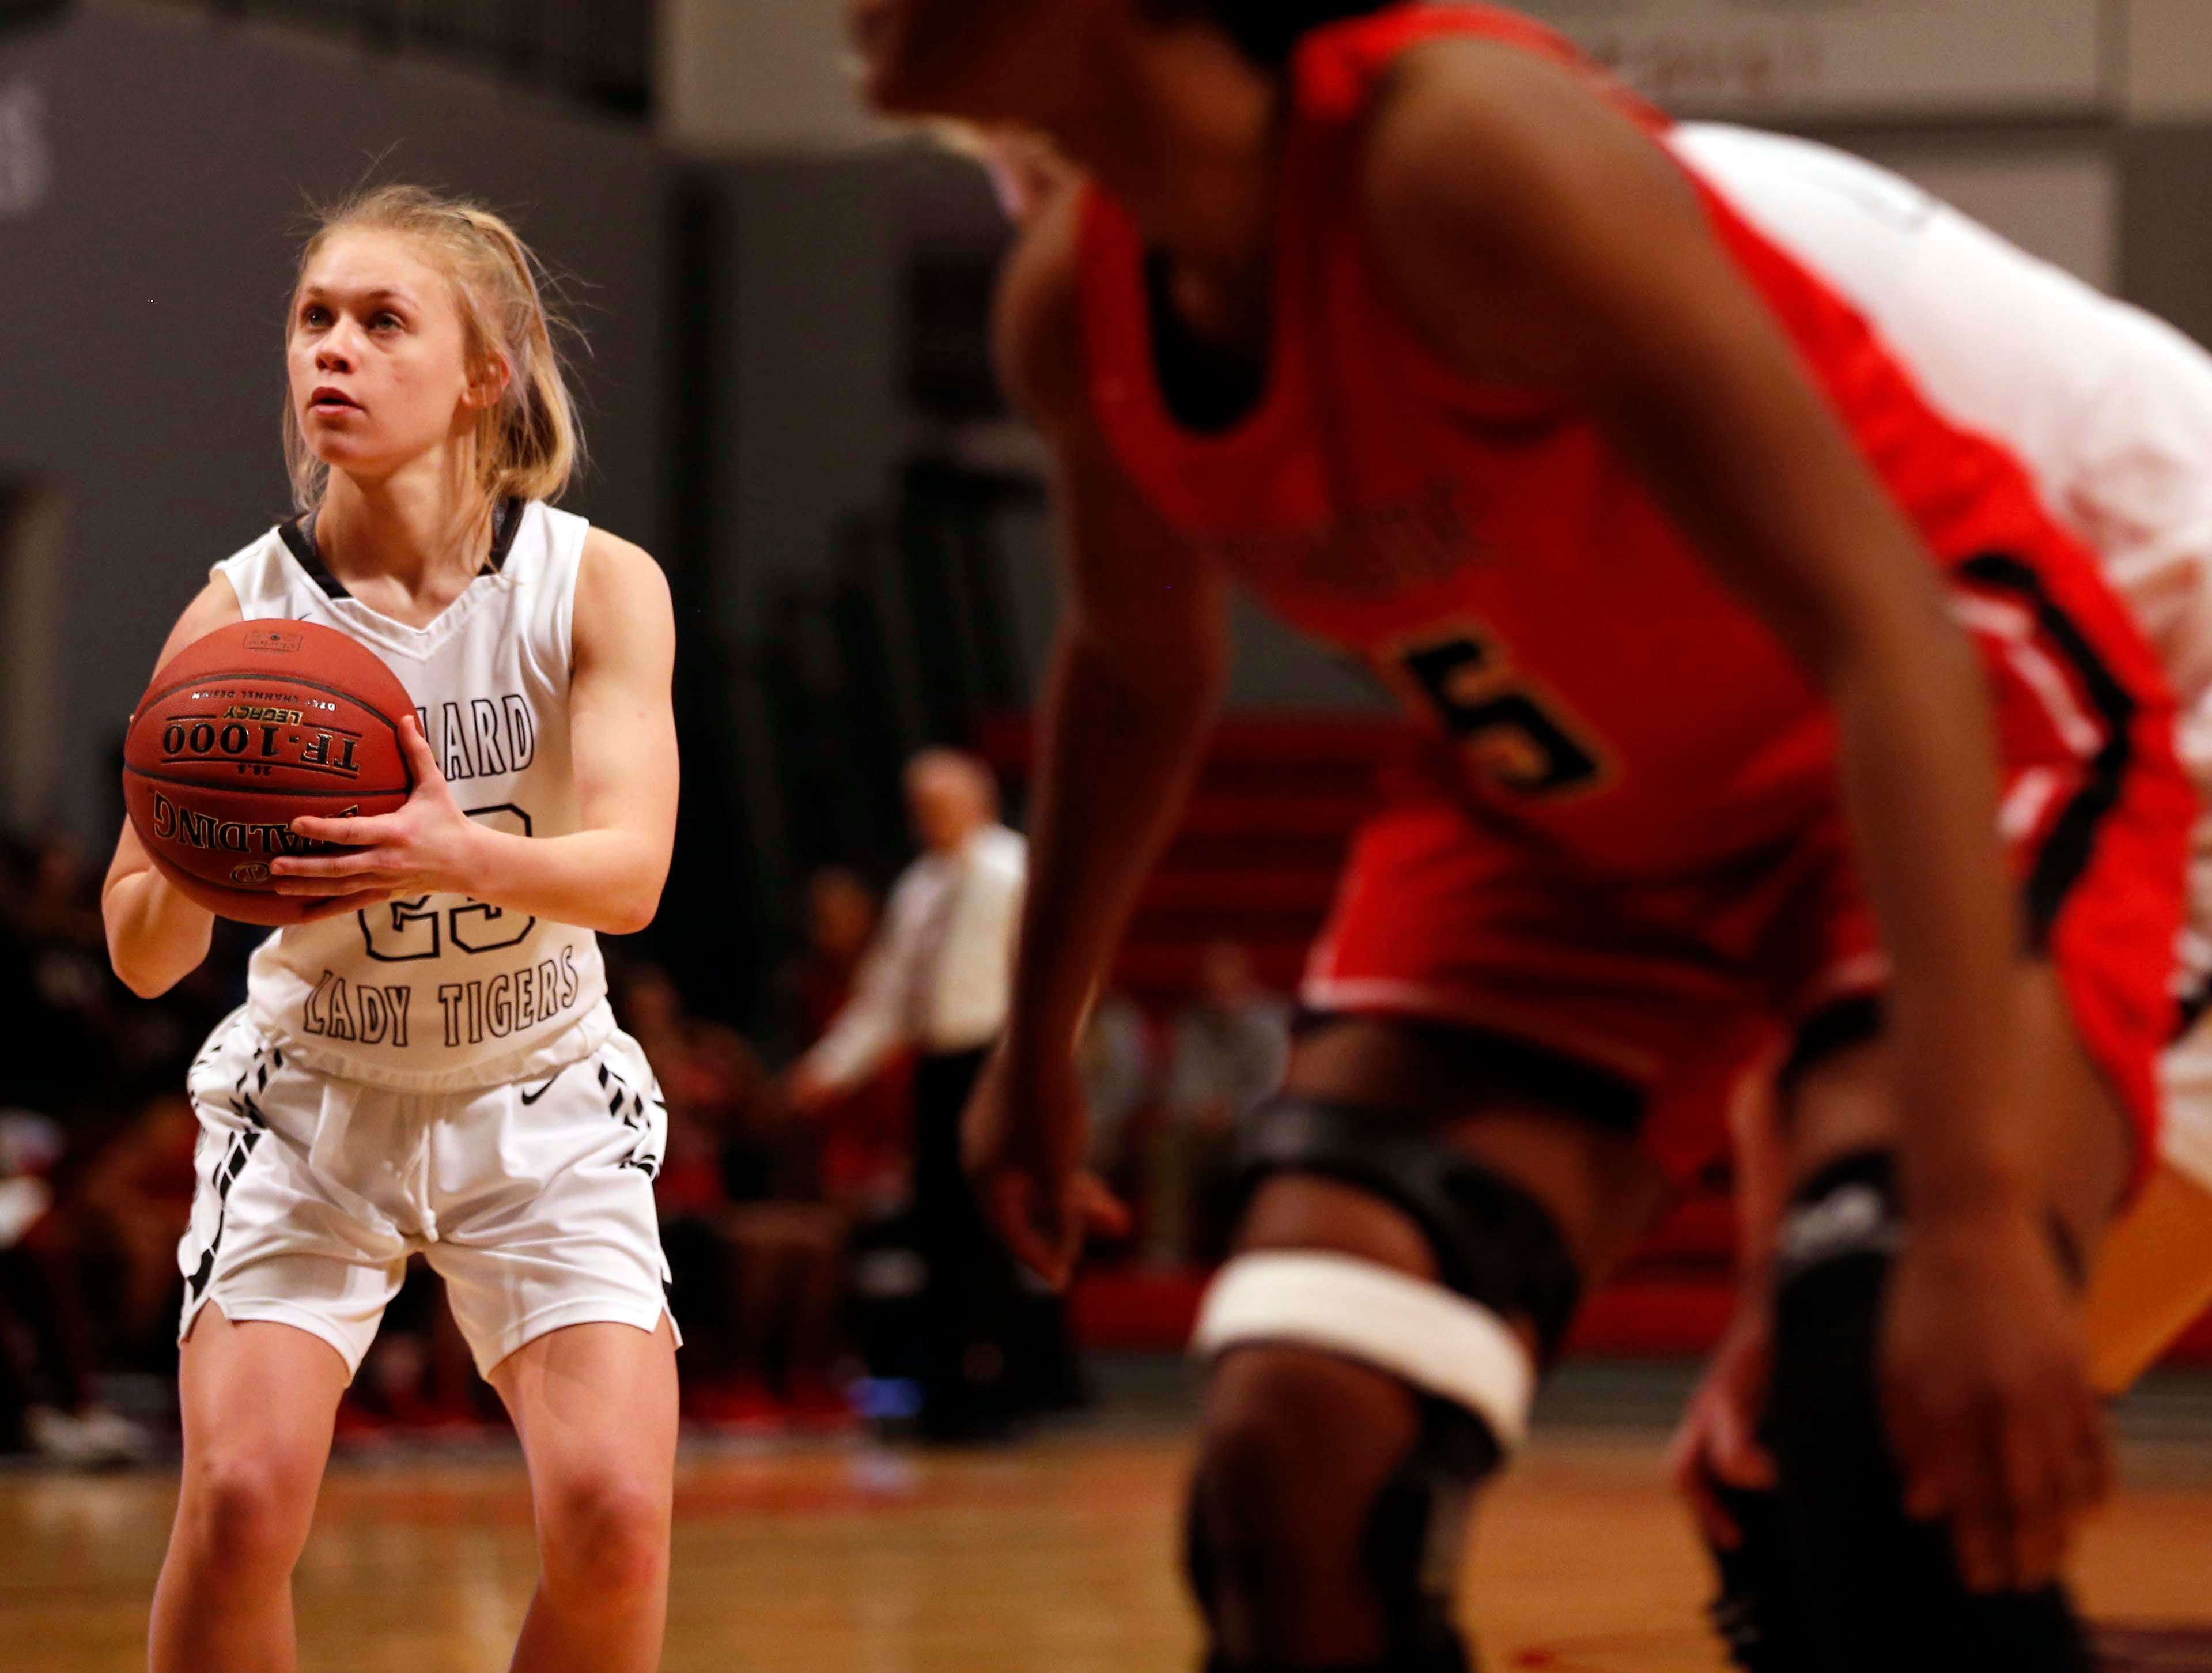 The Willard Lady Tigers against the Northside Fort Smith (Arkansas) Lady Bears at Drury University  on Dec. 29, 2018 during the Pink & White Lady Classic.